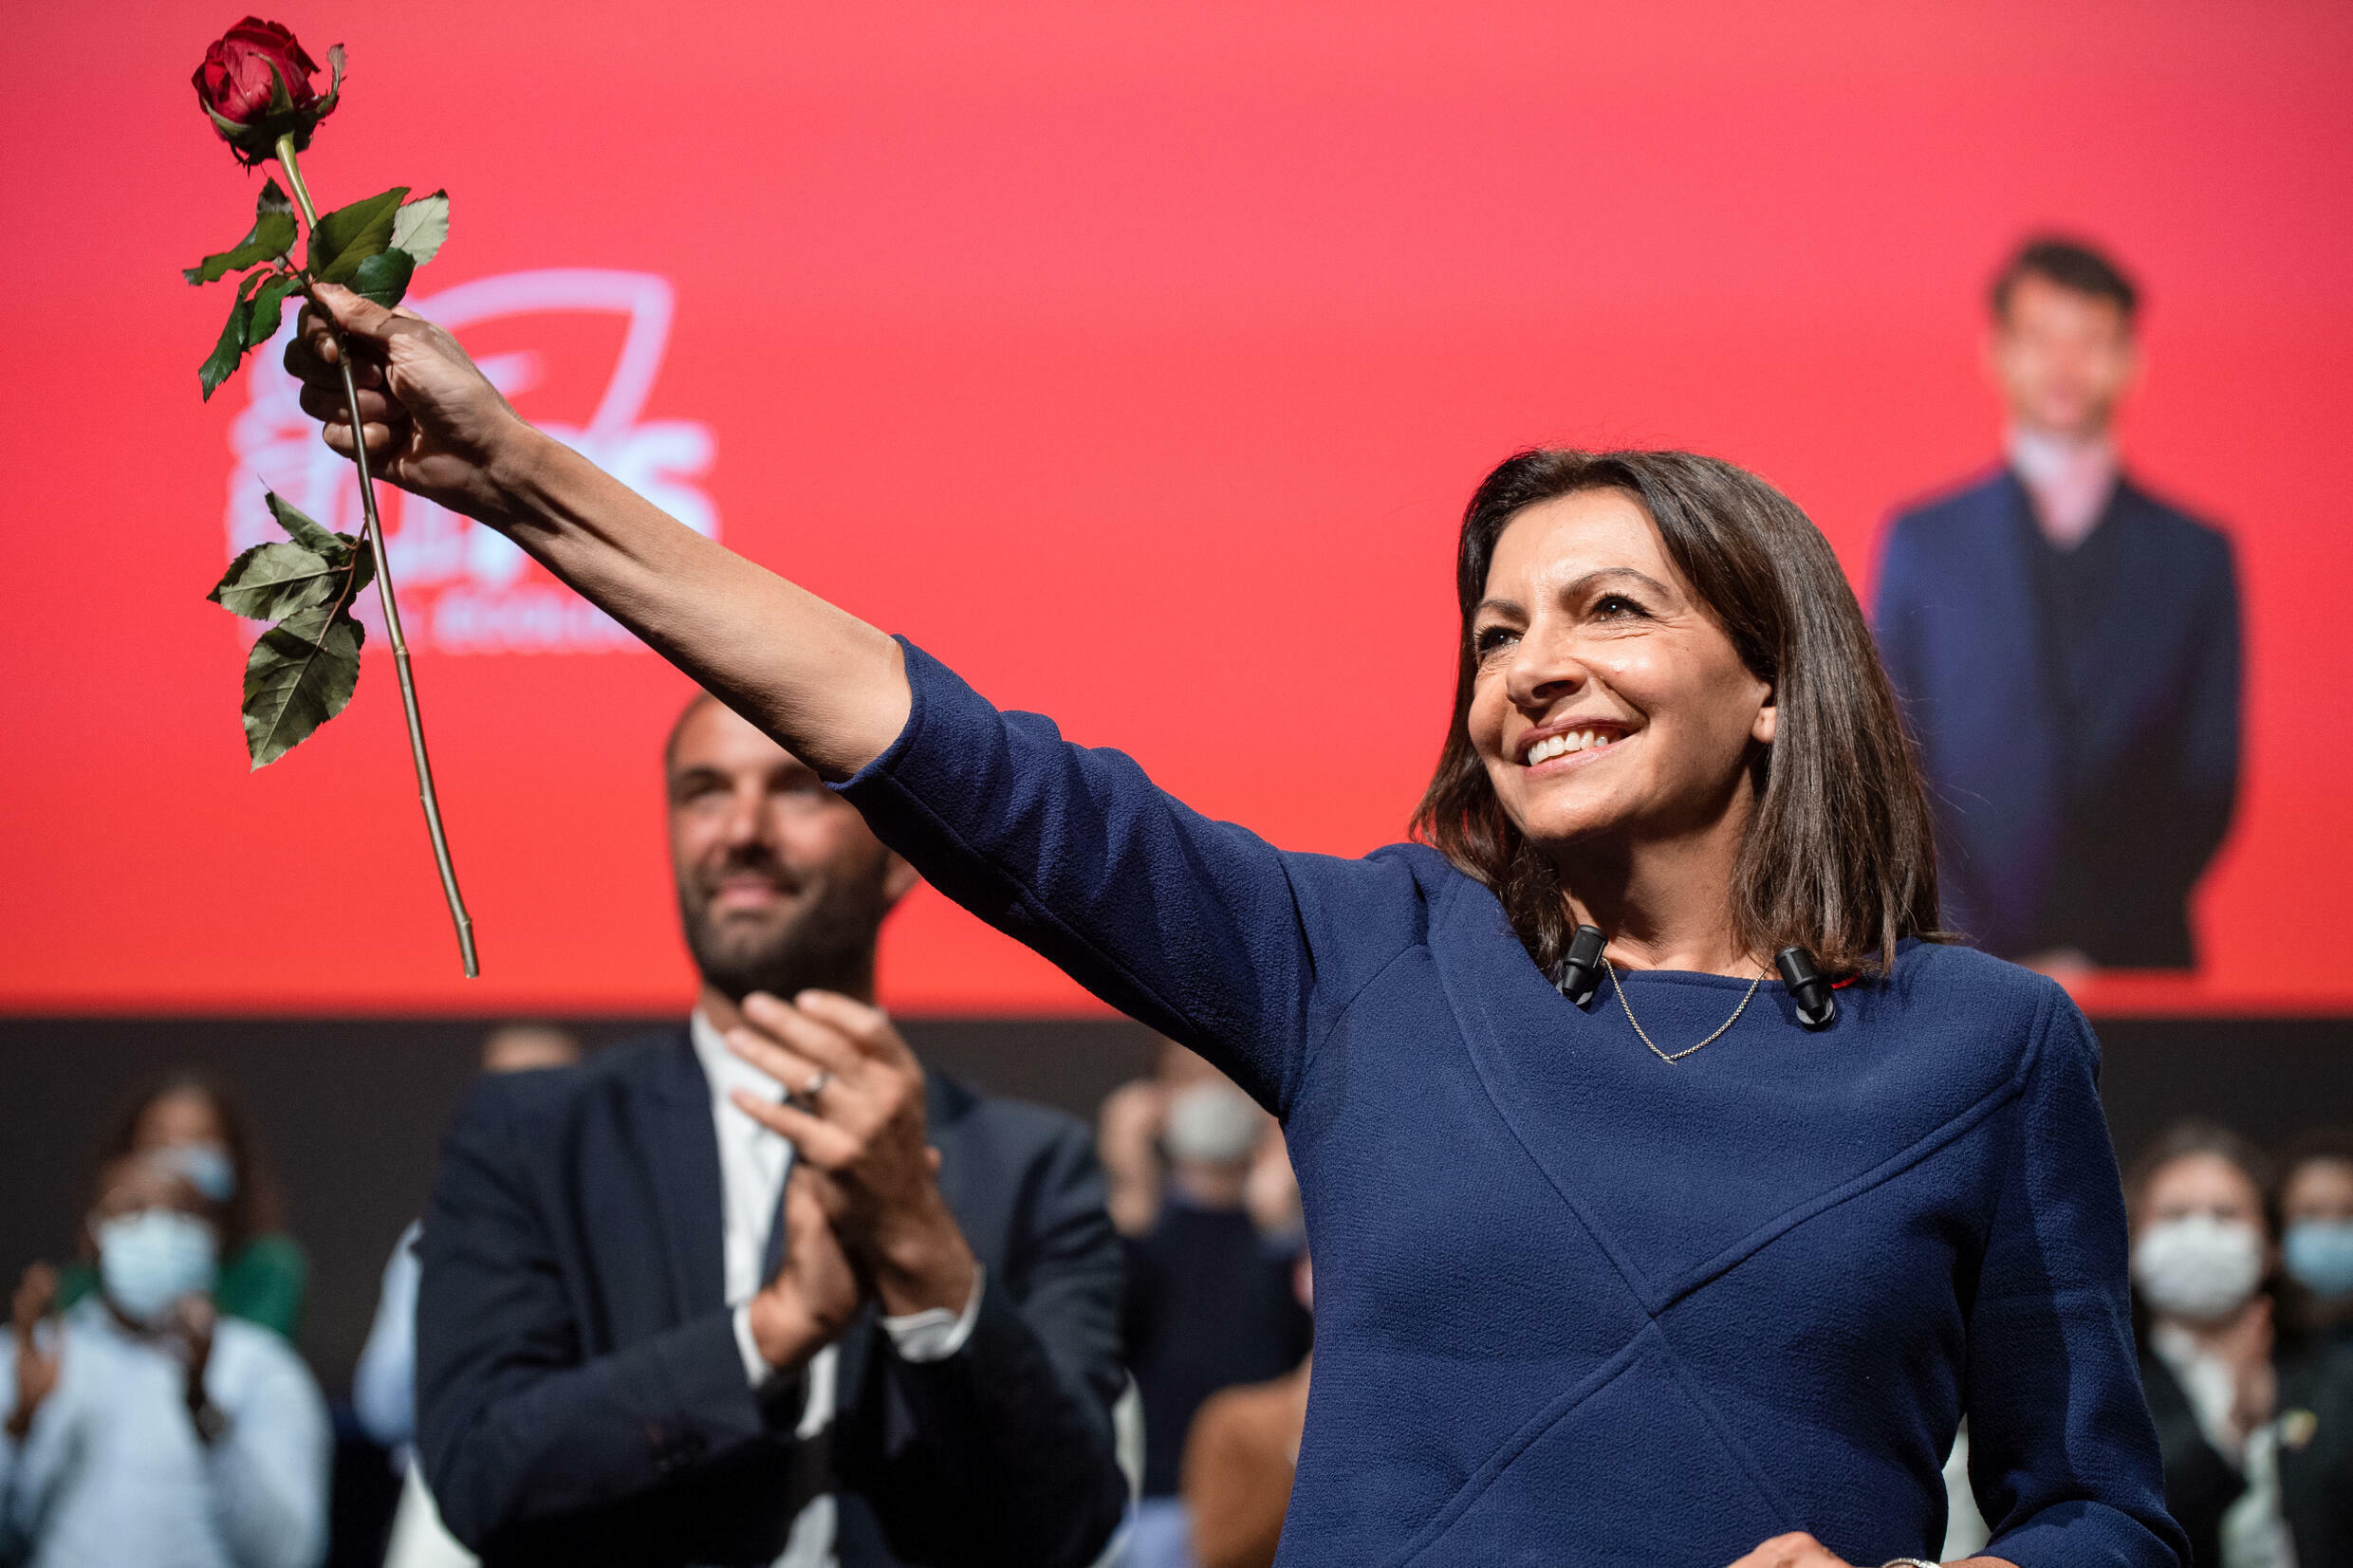 'I'm here to convey a project of social, ecological and democratic reconquest,' Hidalgo told 1,700 party members